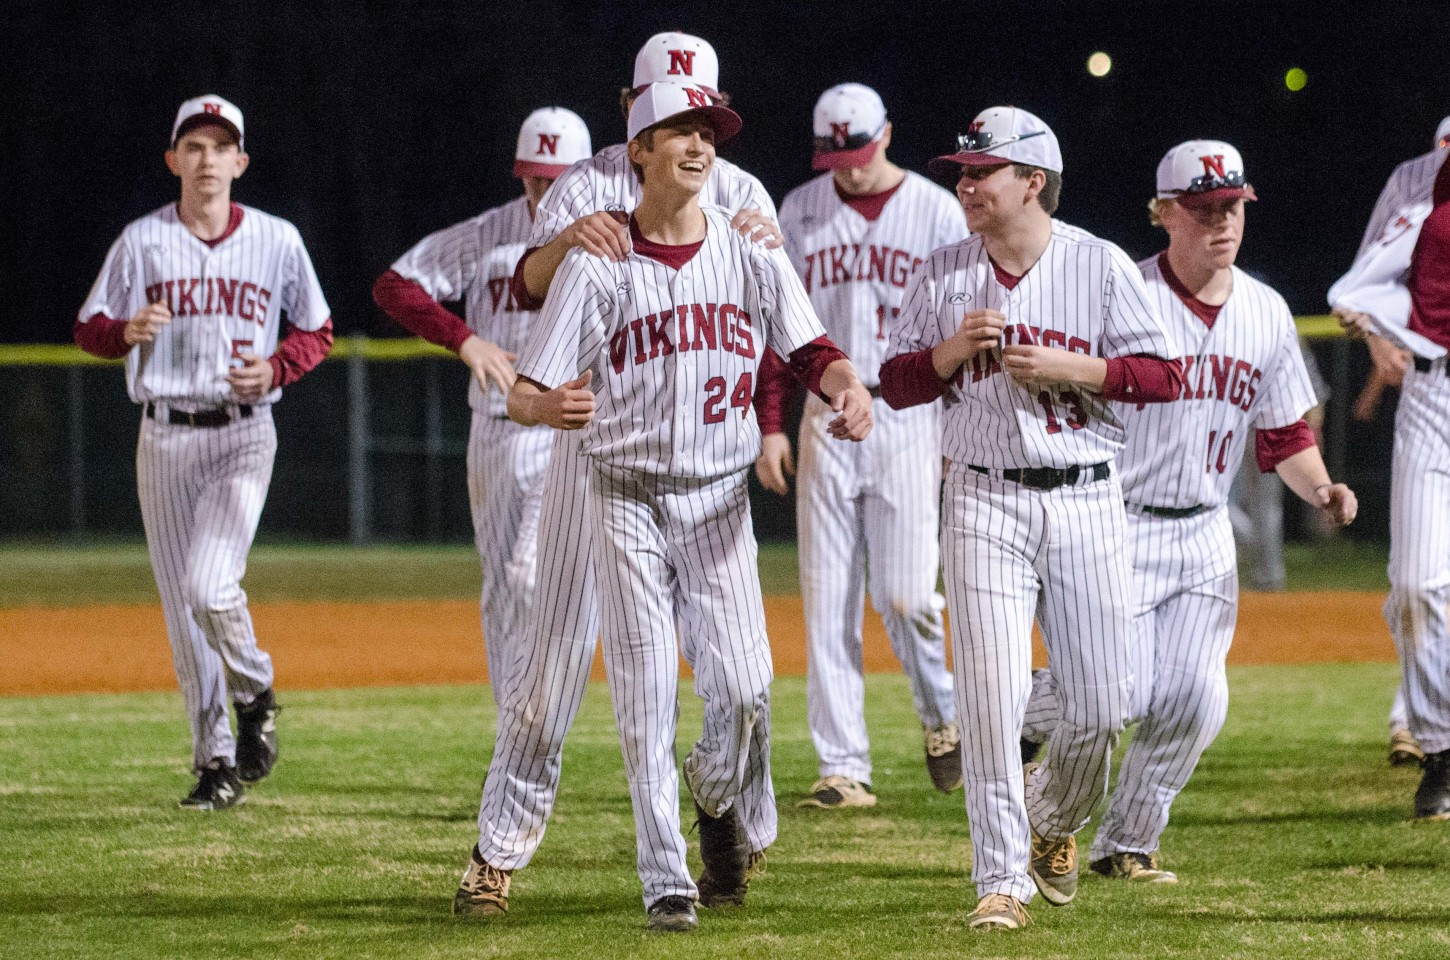 Northgate outscored its first three Region 5-6A opponents 33-2 this week.